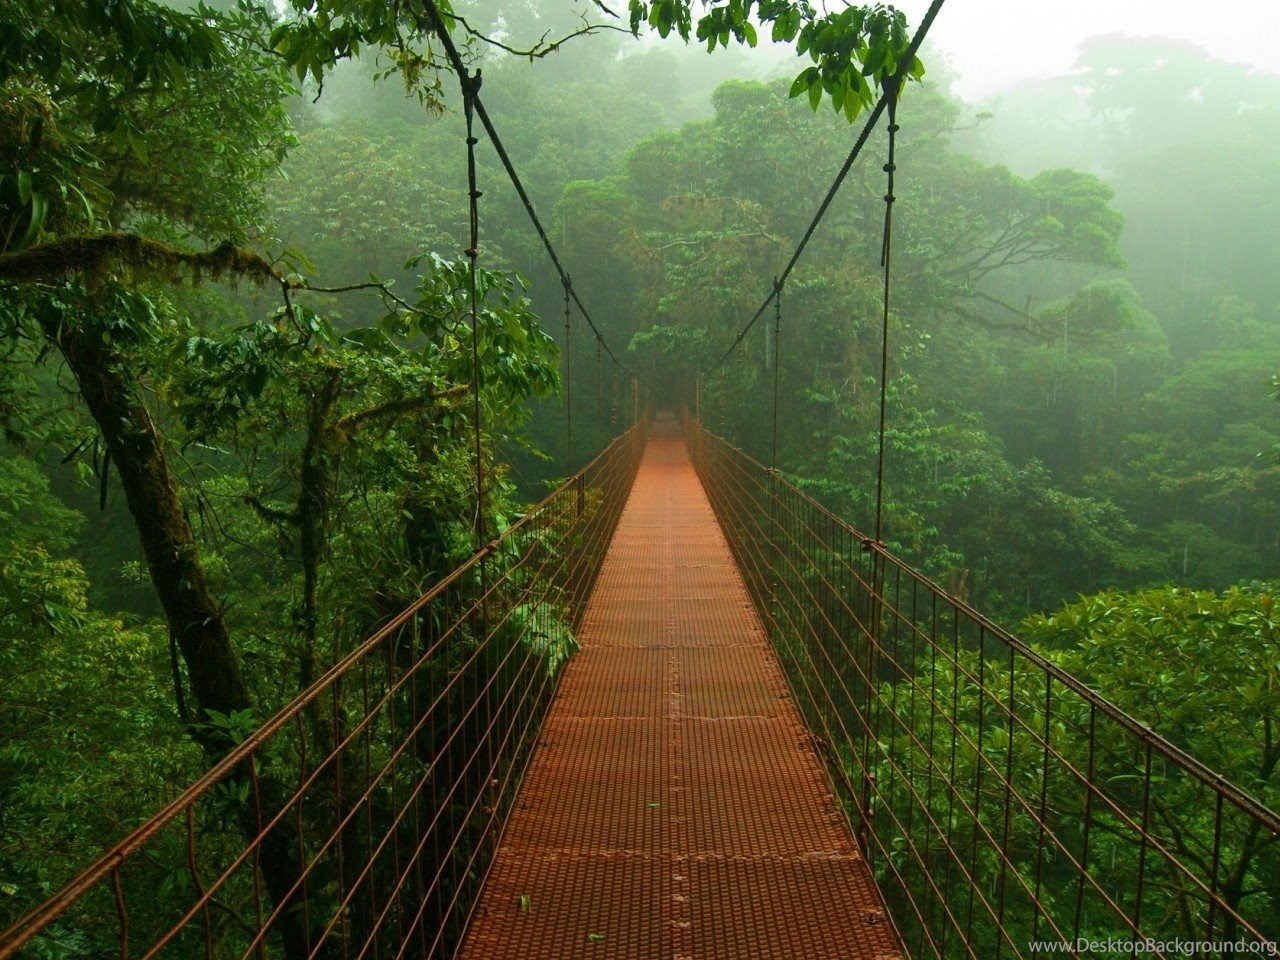 Awesome Costa Rica Hd Wallpapers Free Download Desktop Background